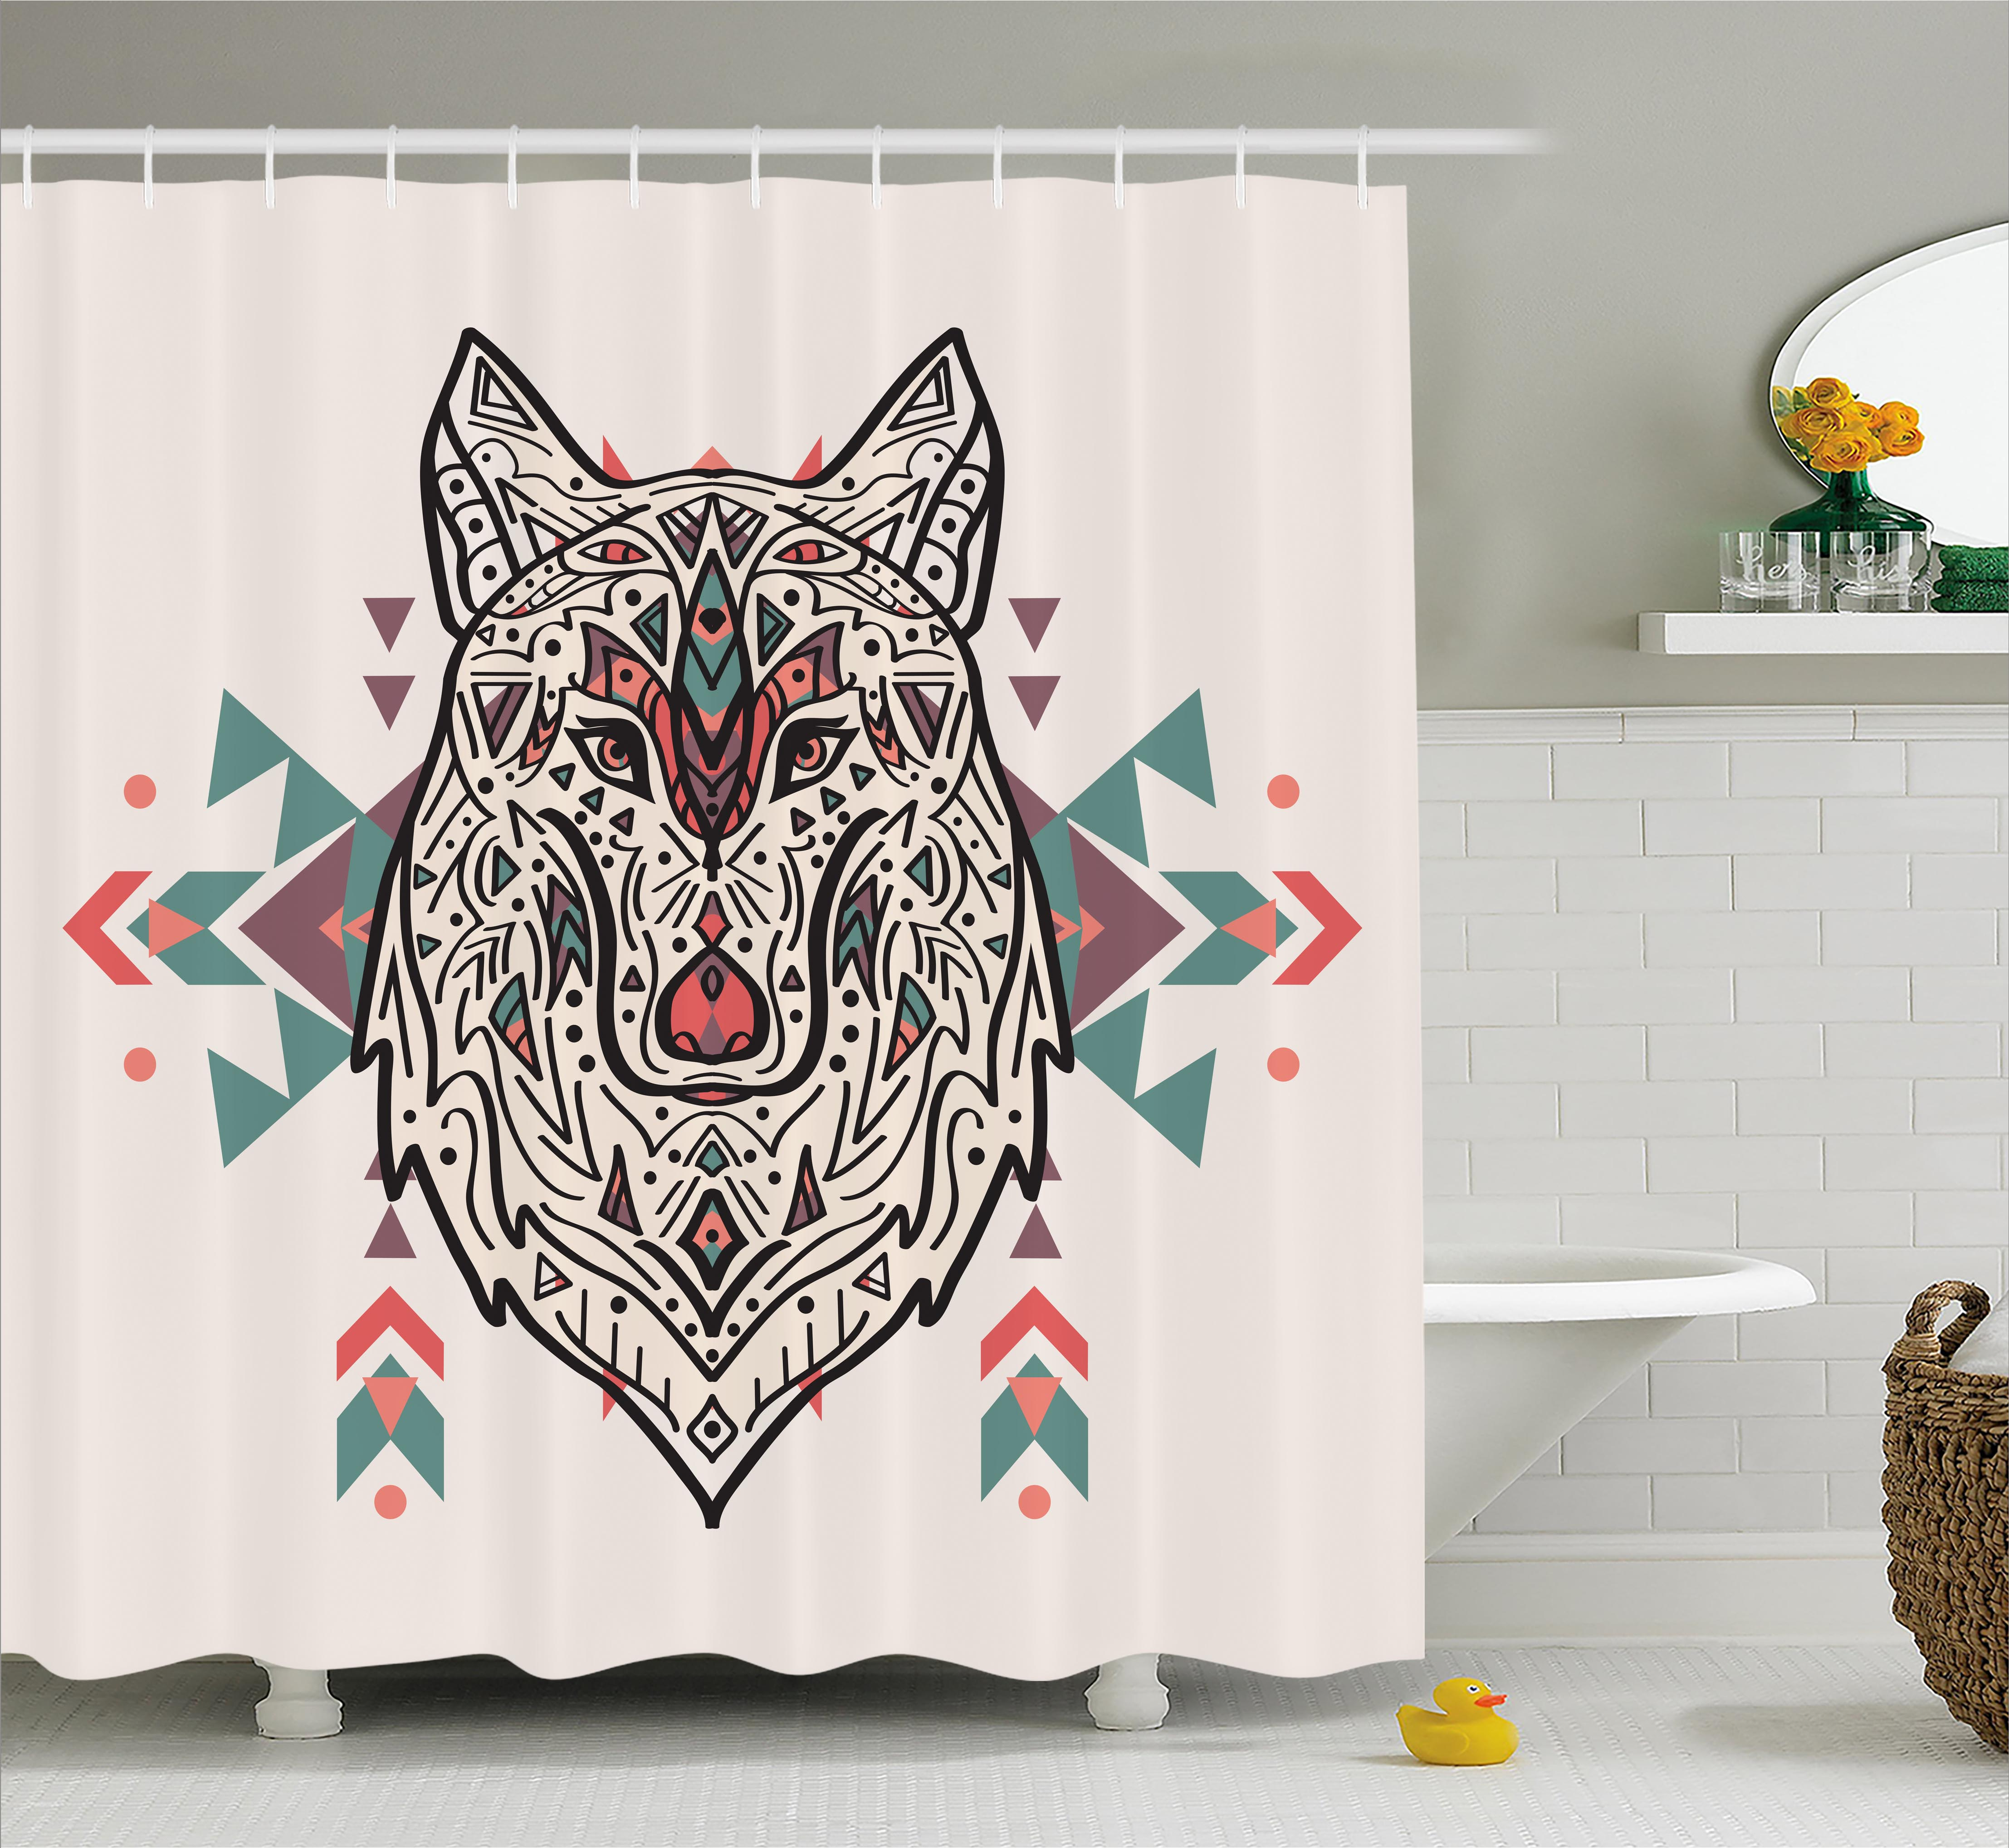 Tribal Shower Curtain, Charming Lion Like Wolf Head With